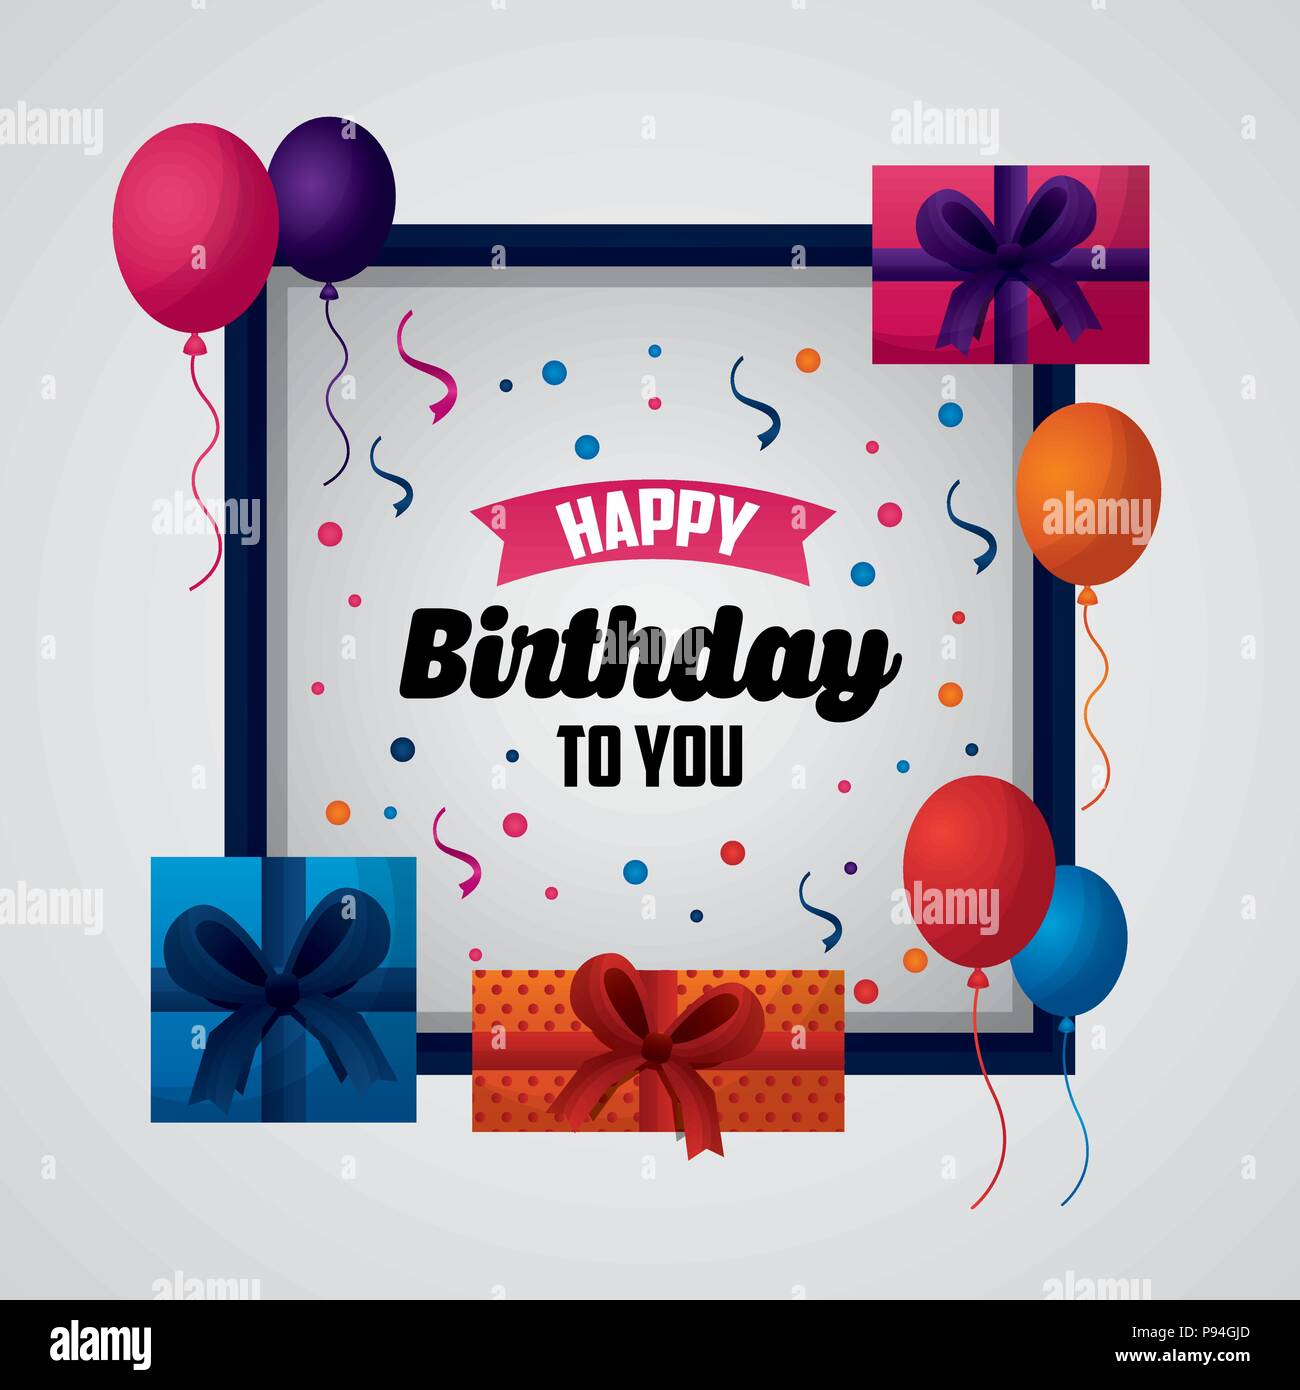 Happy Birthday Card Table Sign Serpentine Confetti Balloons Gift Boxes Vector Illustration